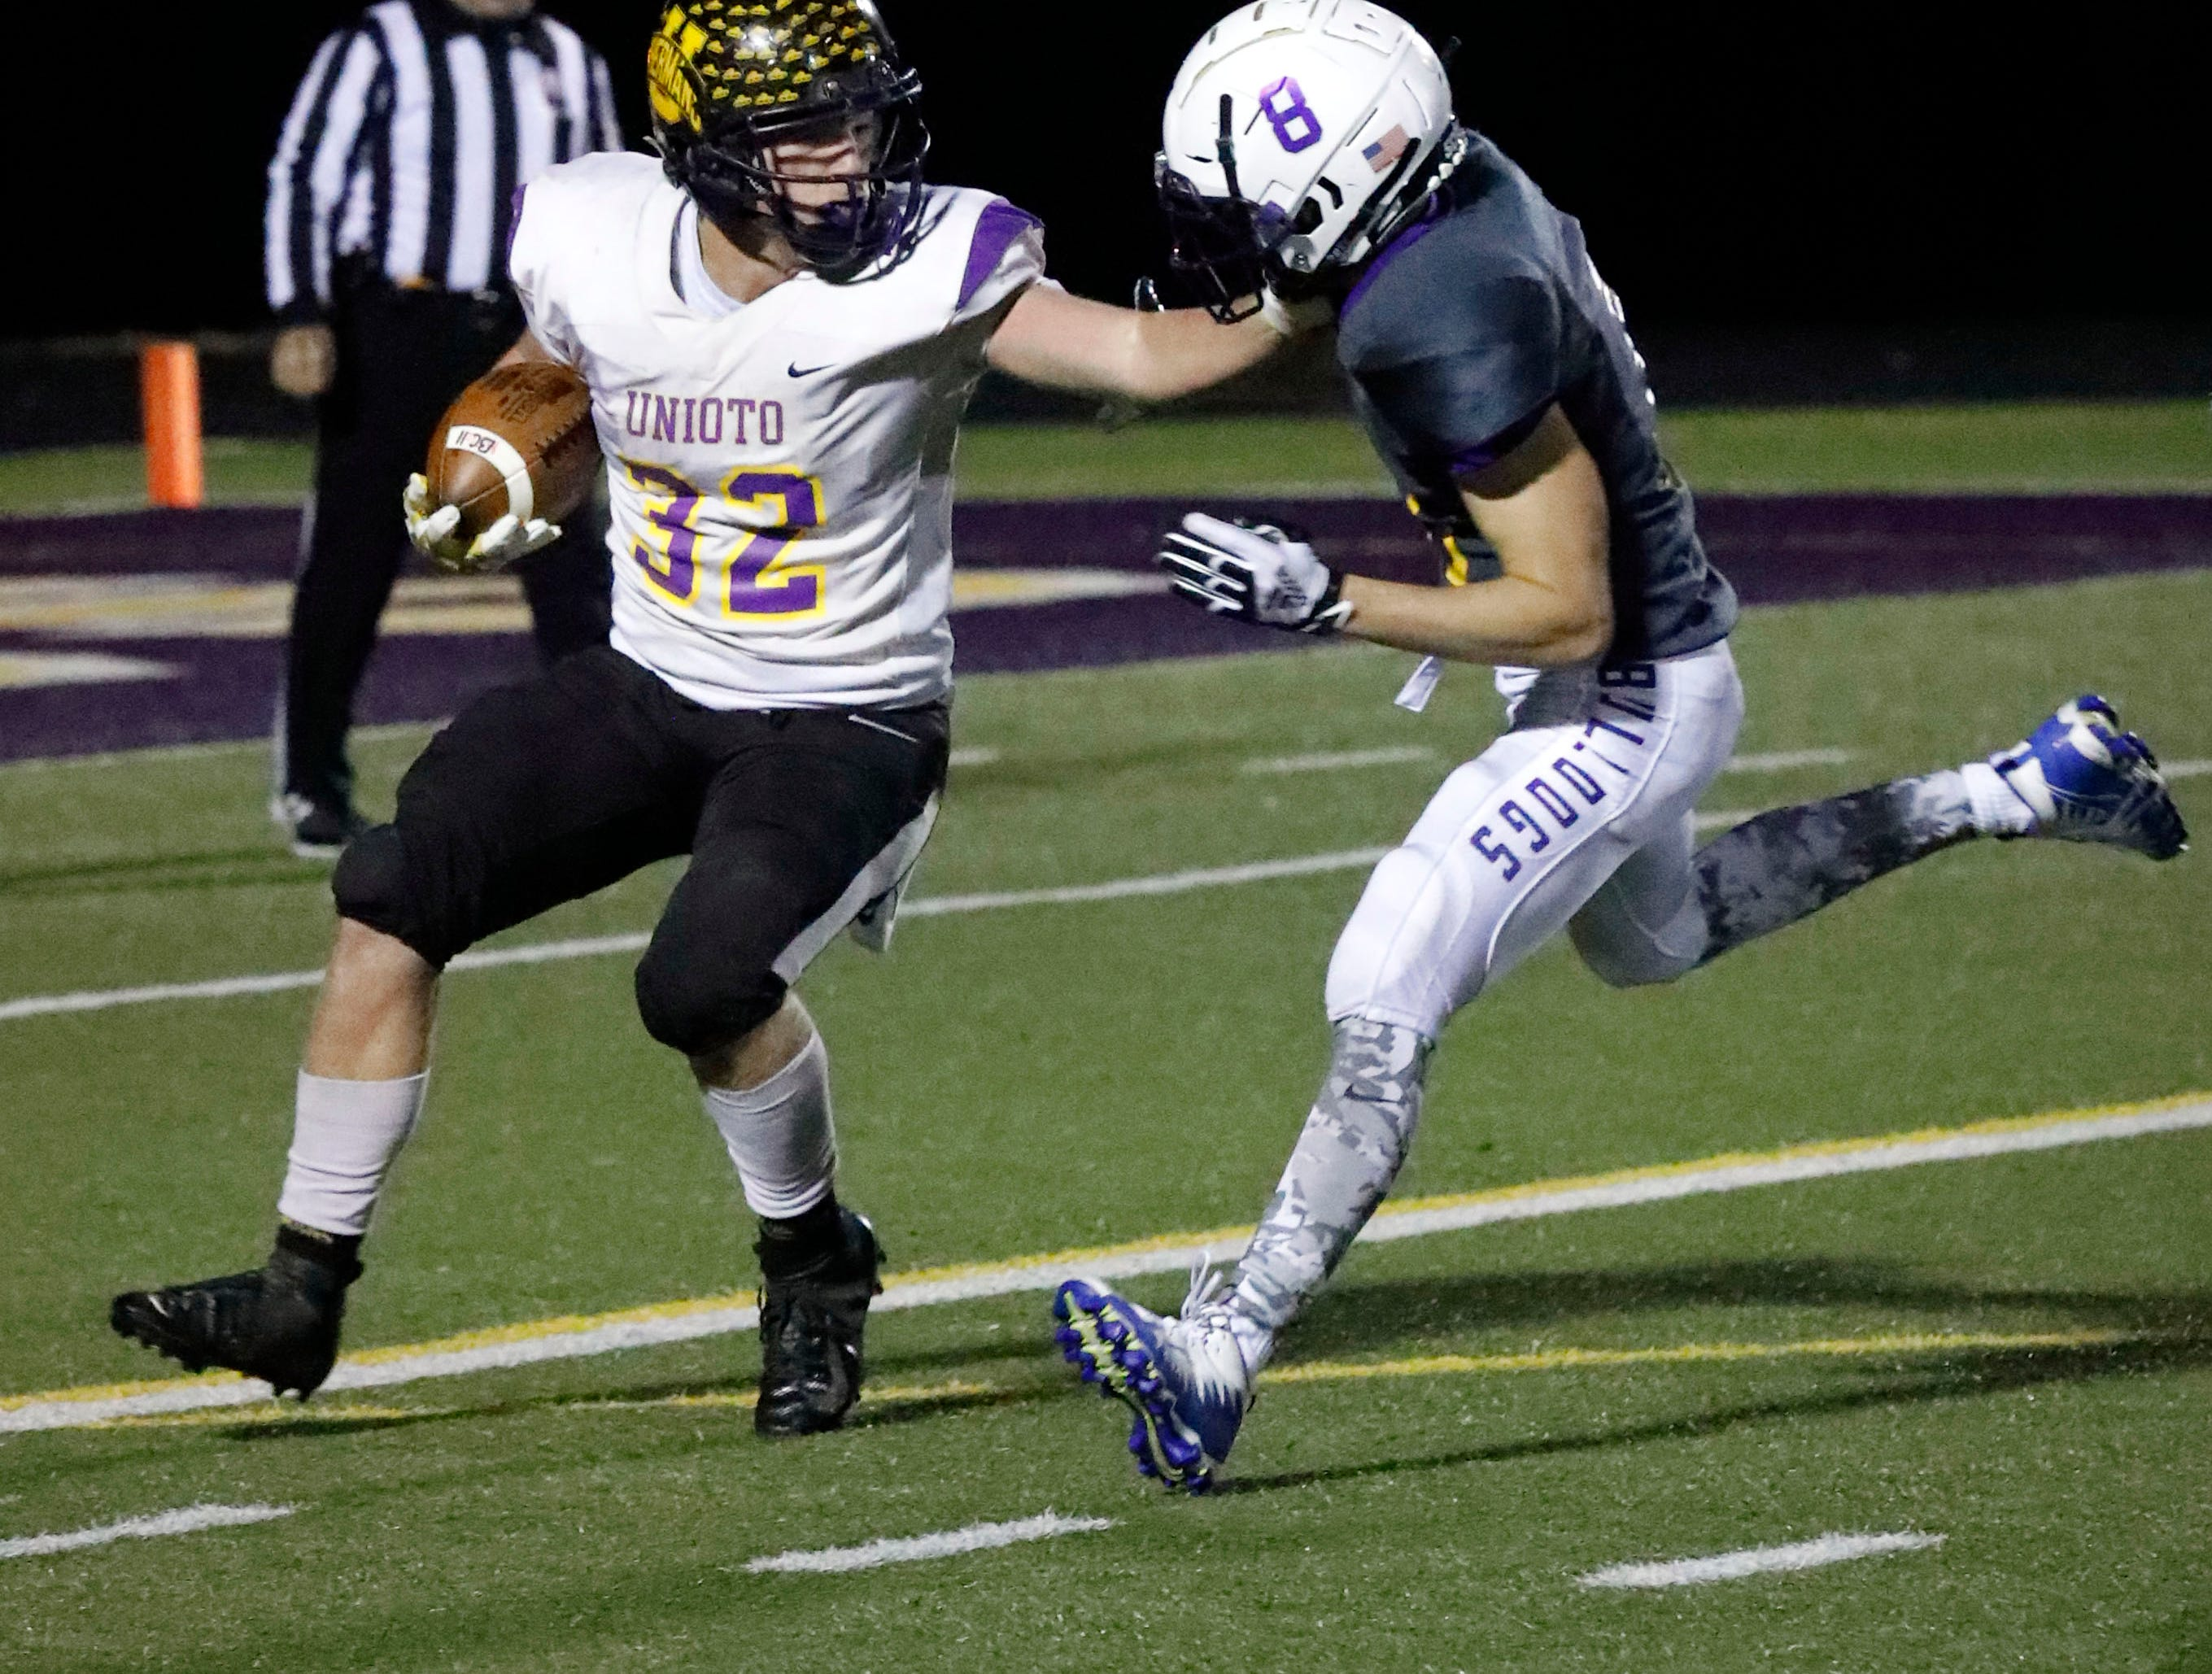 Bloom-Carroll defeated Unioto 38-7 in the first round of the playoffs Saturday night, Nov. 3, 2018, at Bloom-Carroll High School in Carroll.